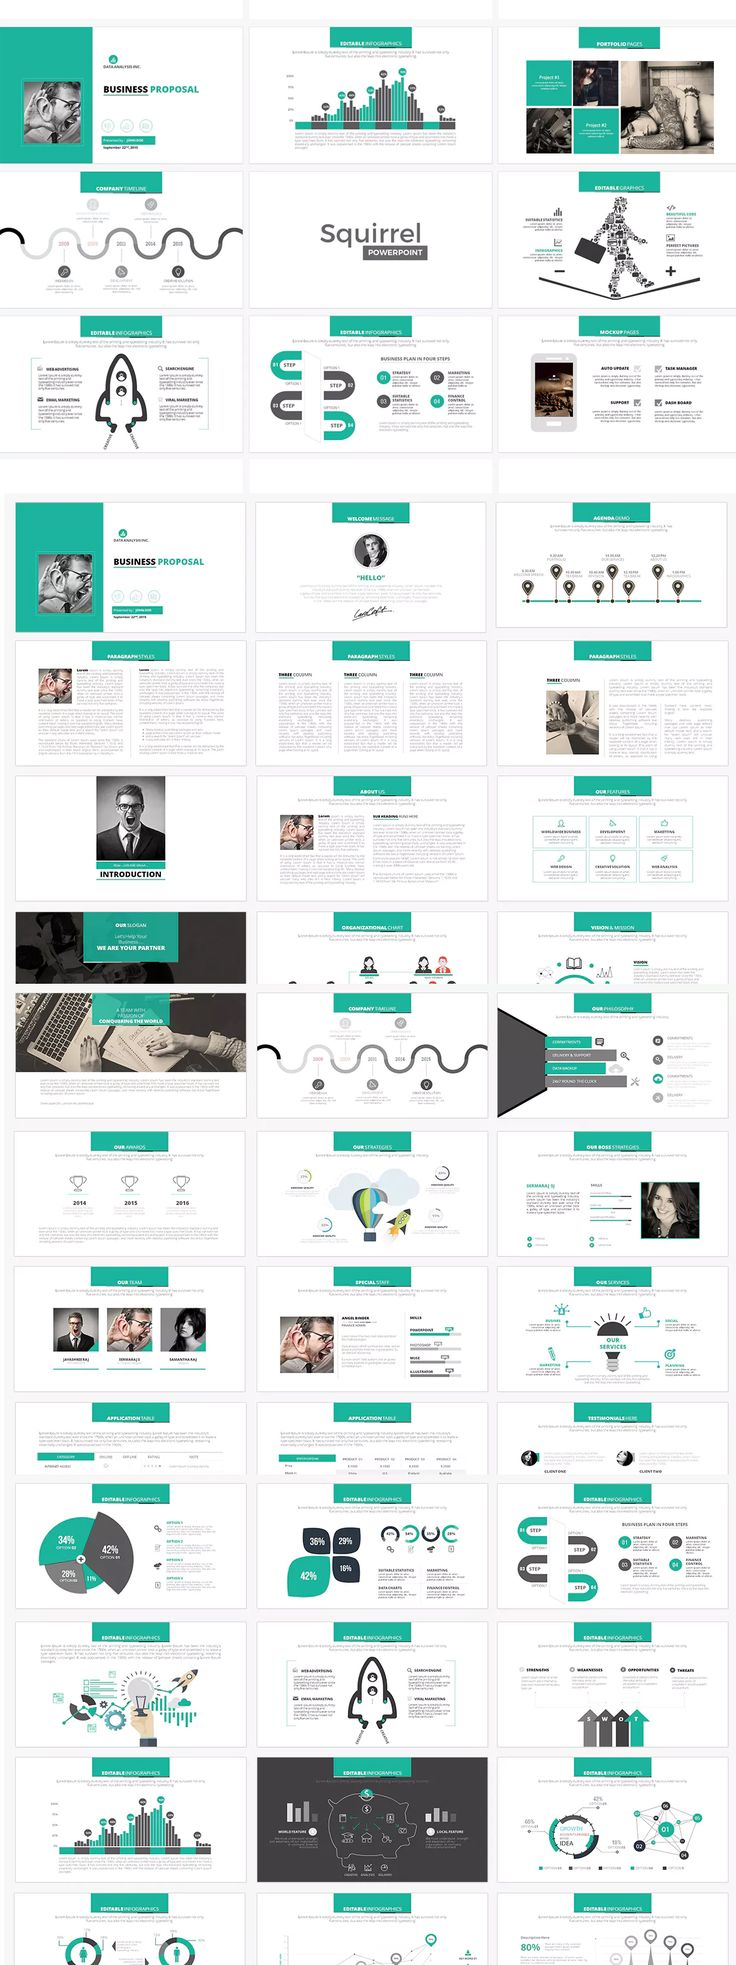 270 best powerpoint presentation templates images on pinterest squirrel powerpoint template by graphixshiv on envato elements alramifo Gallery